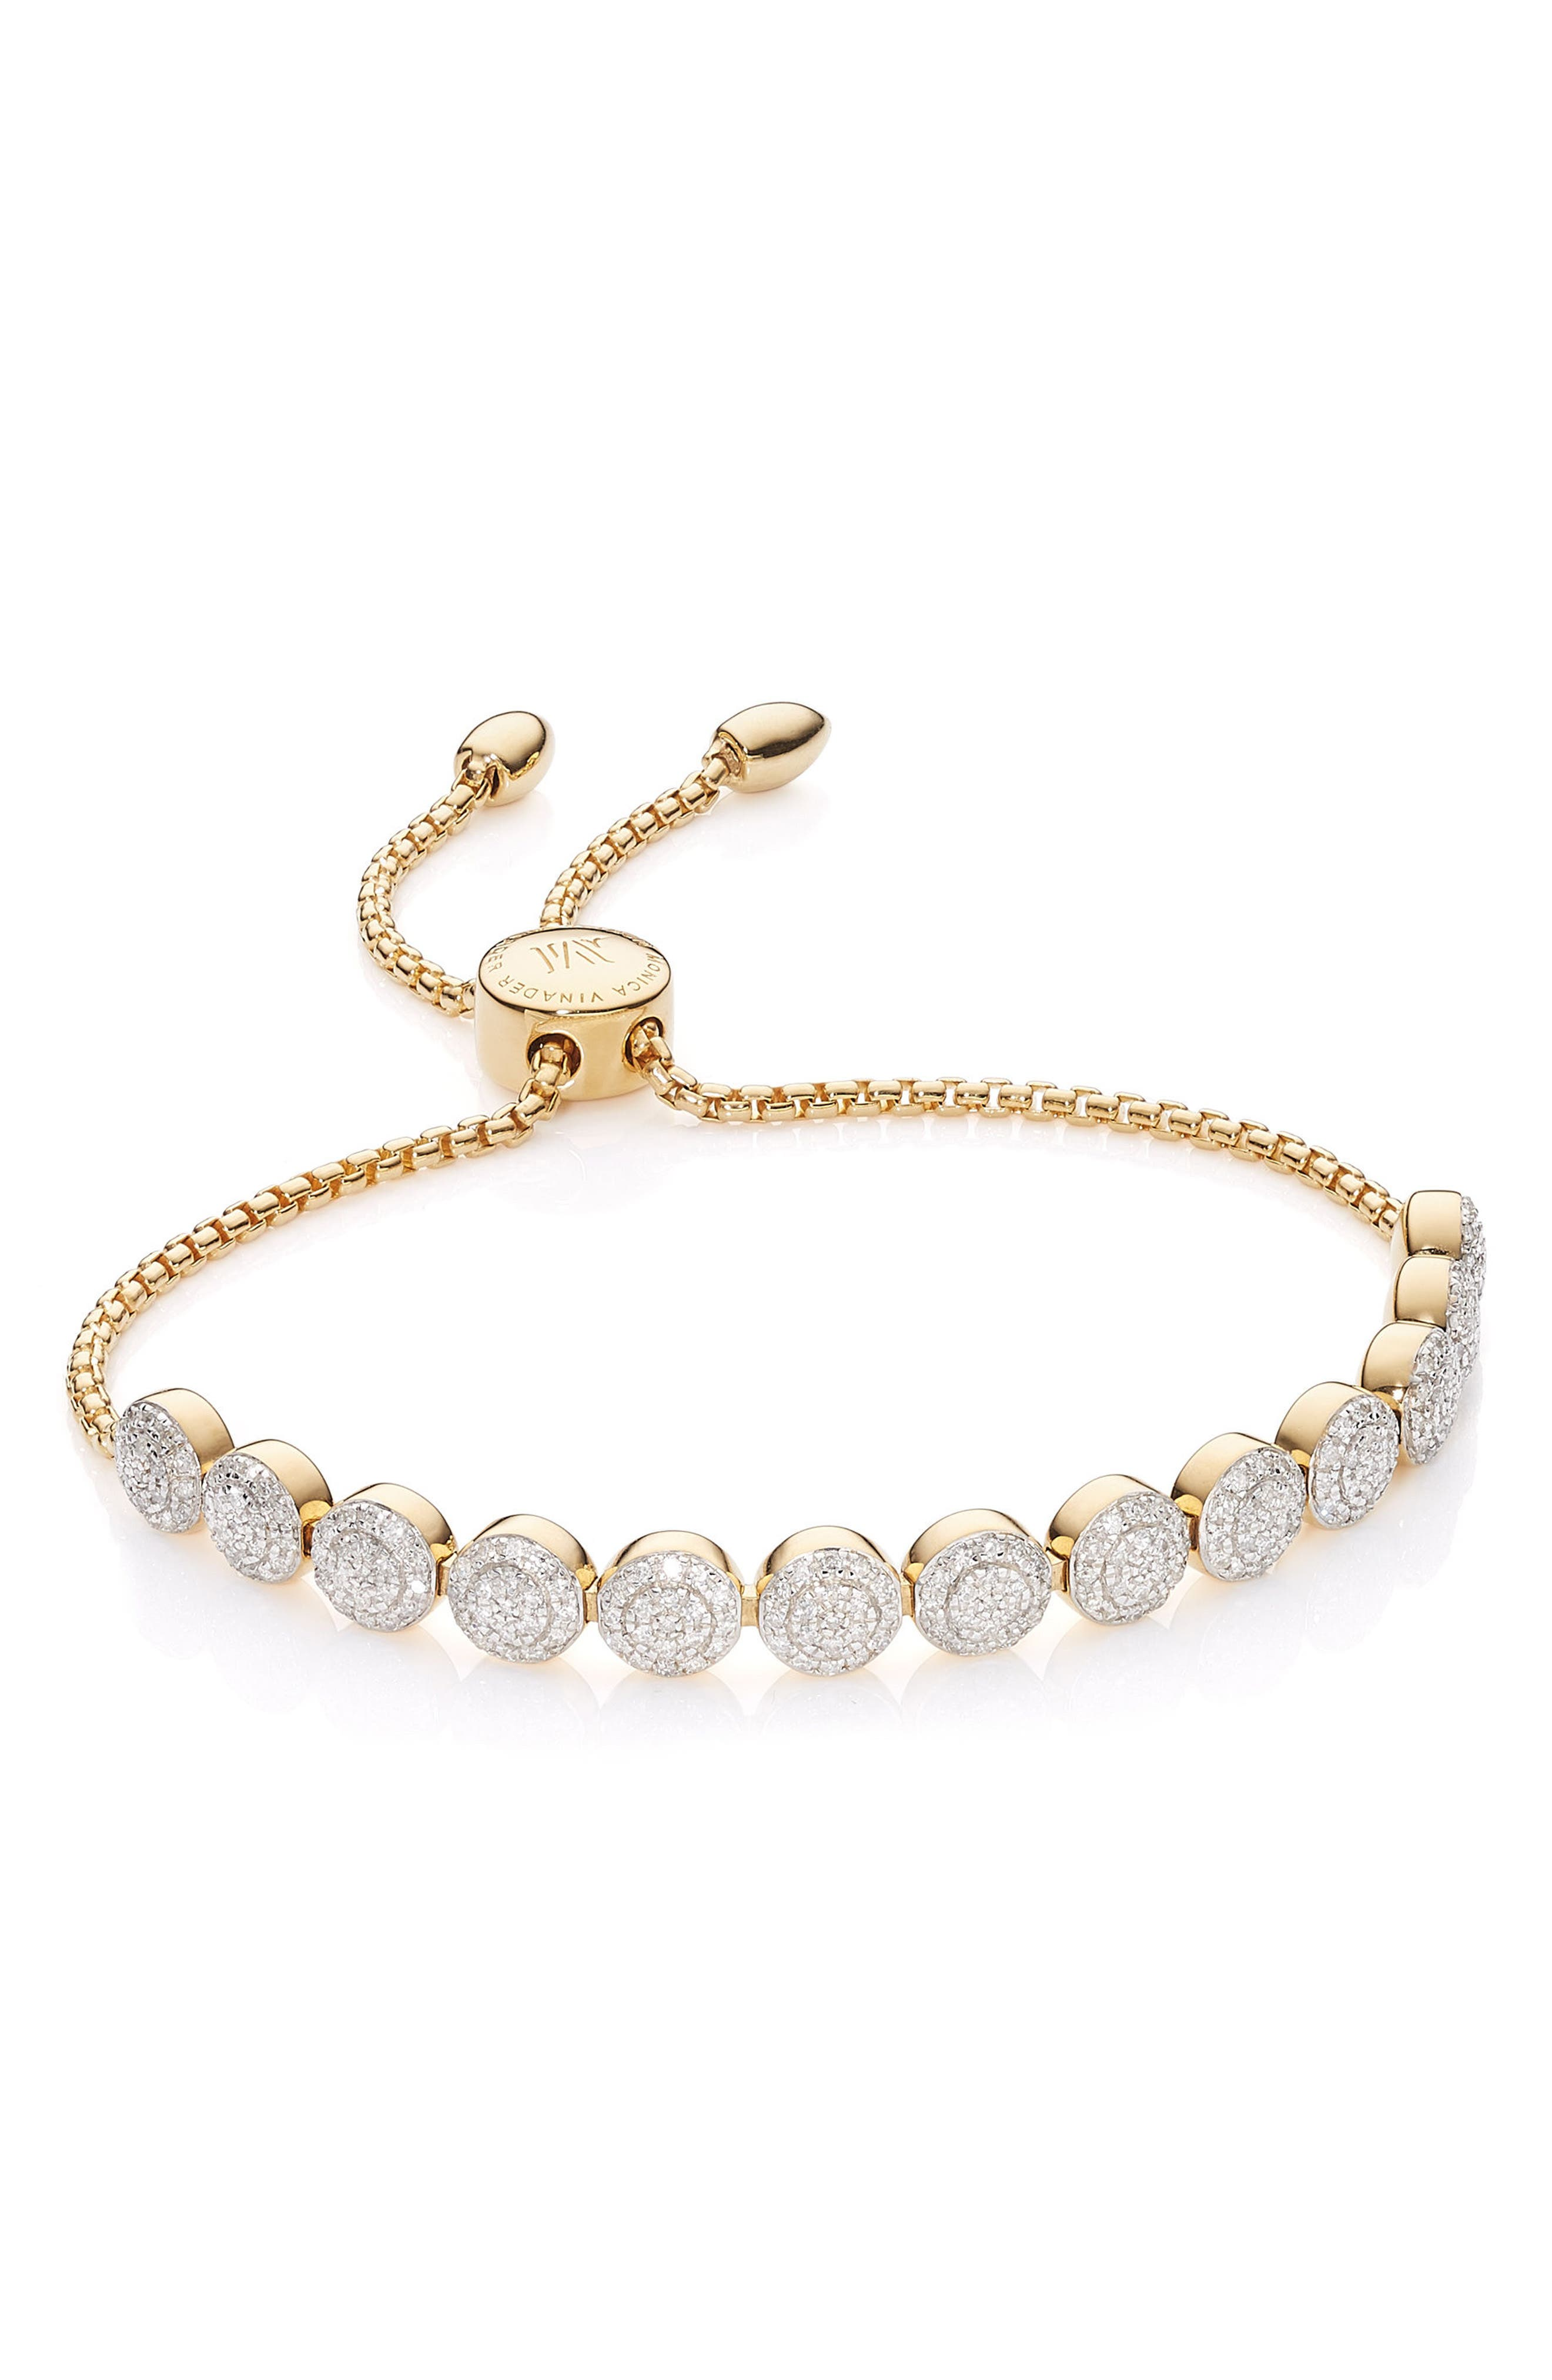 Fiji Beaded Chain Diamond Bracelet,                         Main,                         color, Gold